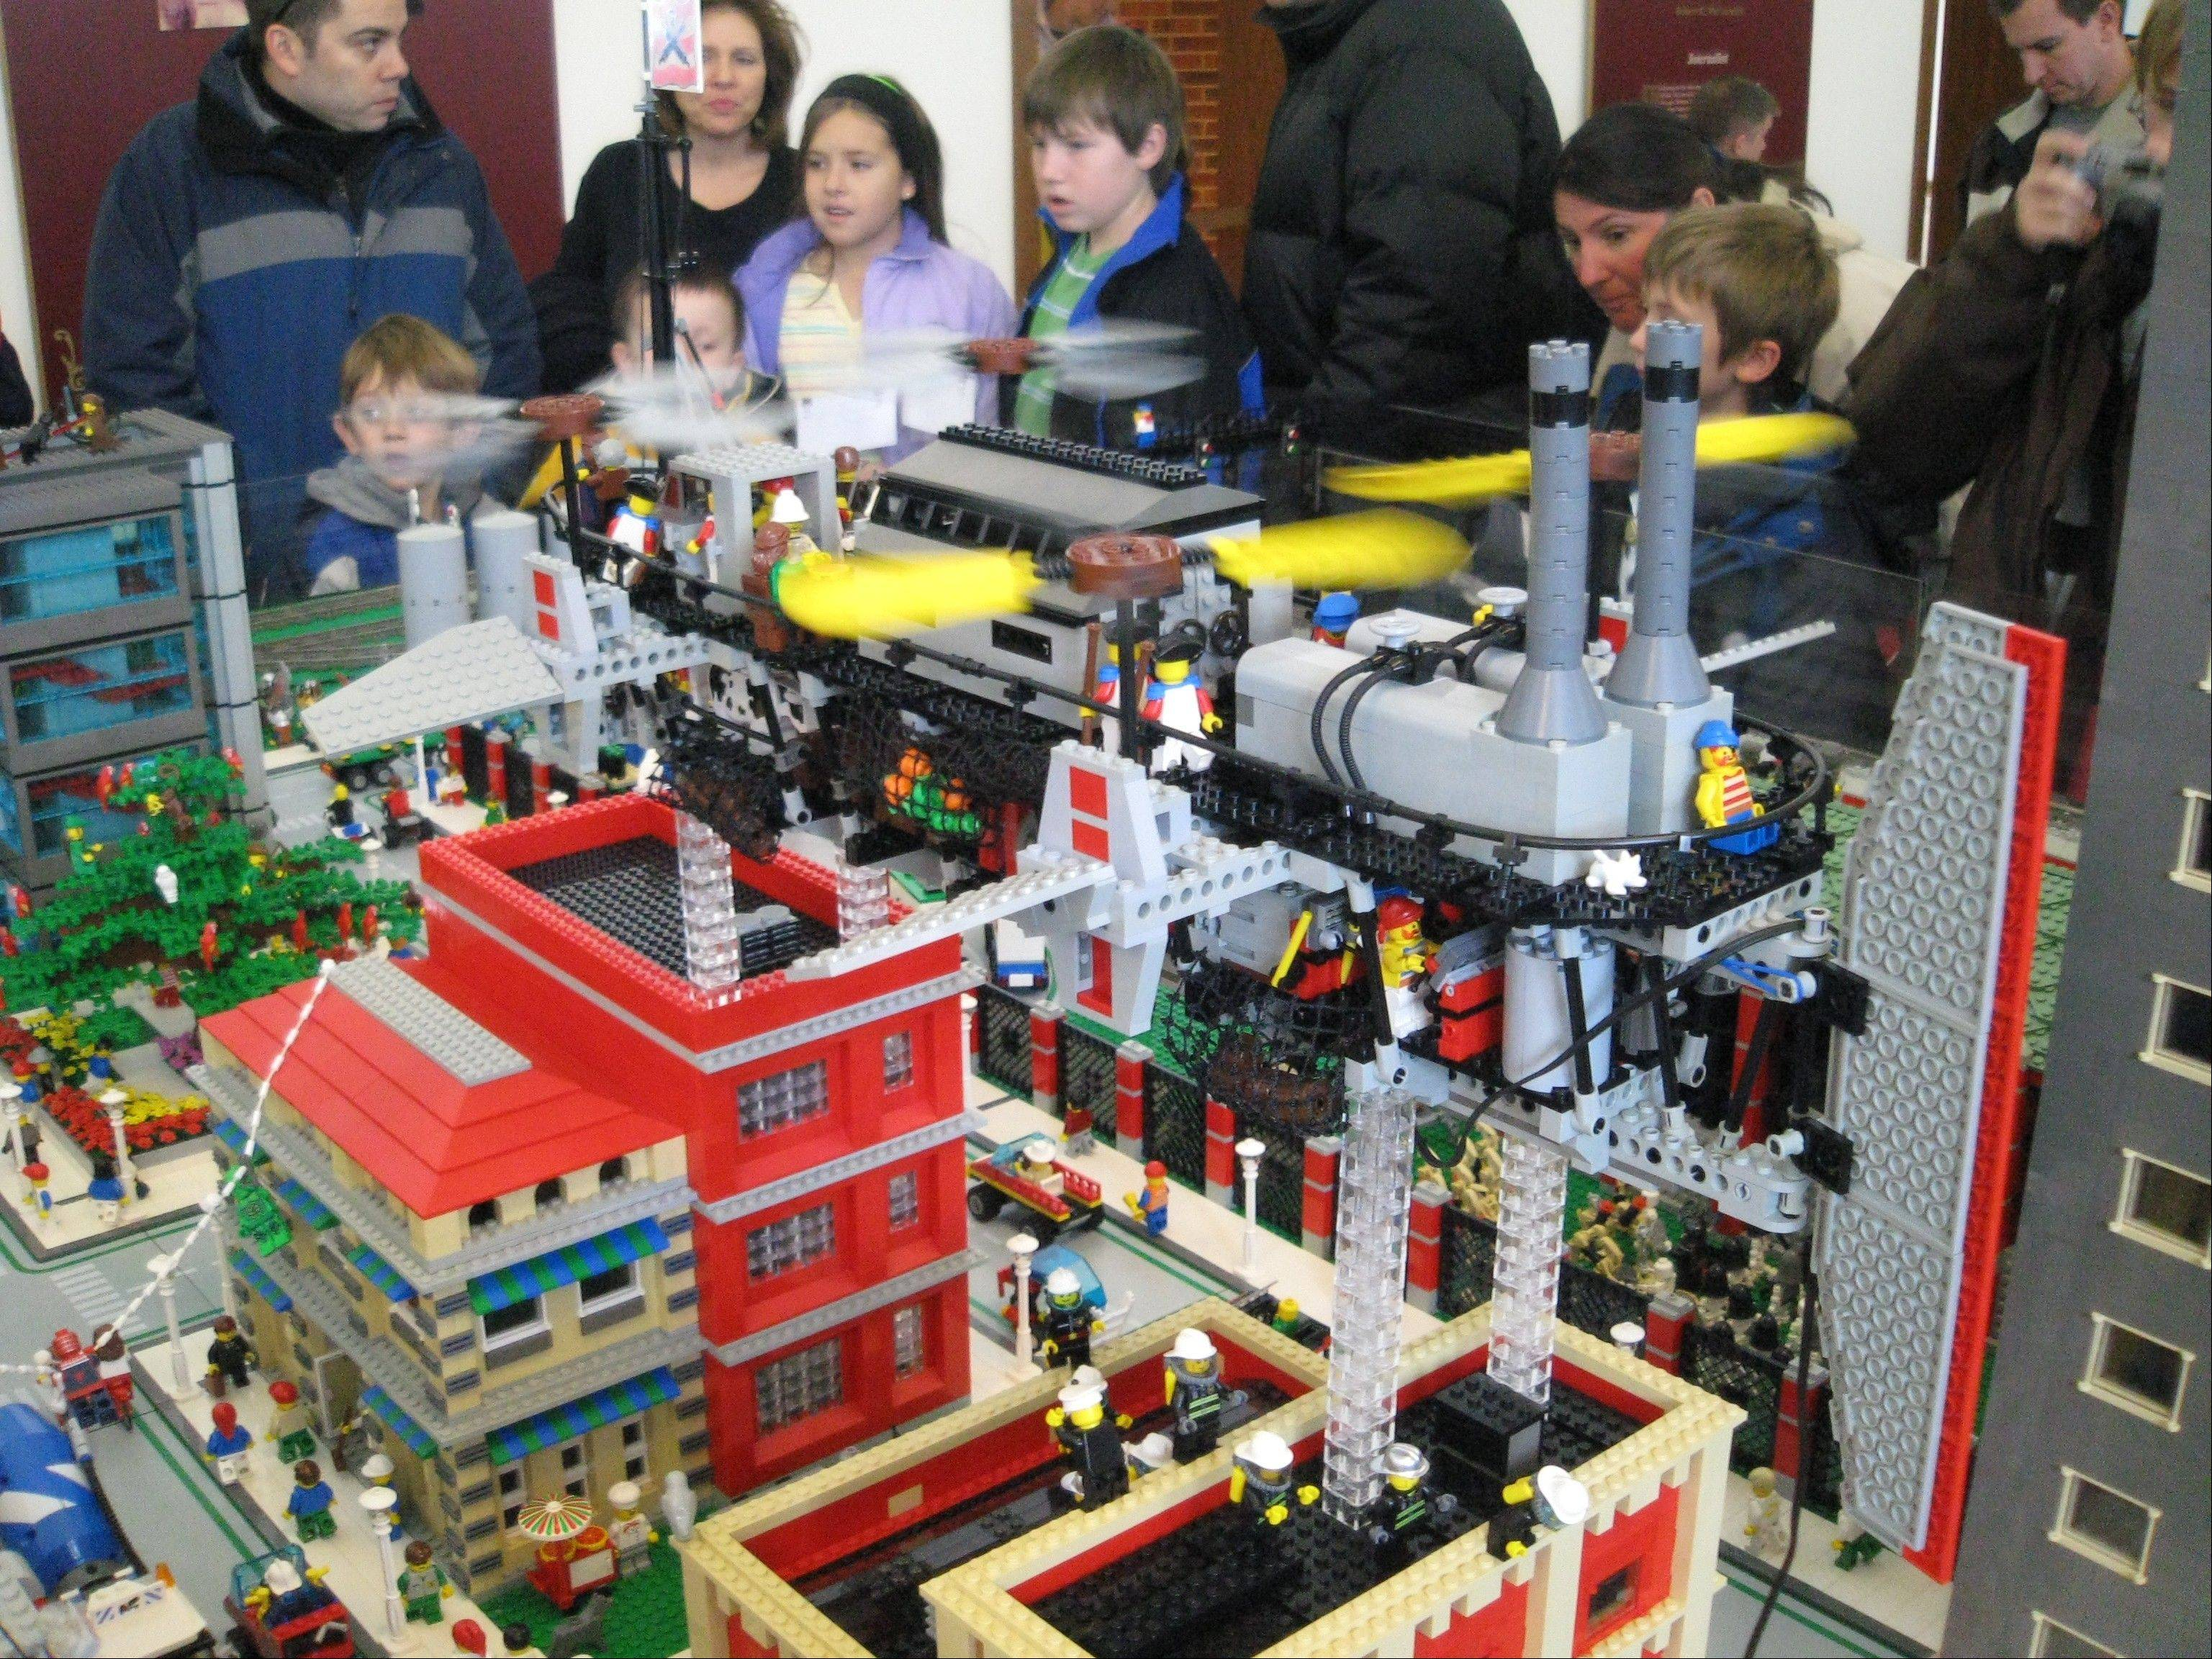 Intricate cities in the Lego Train Show include detailed buildings, cars, people, landscaping and more all constructed with Lego bricks.